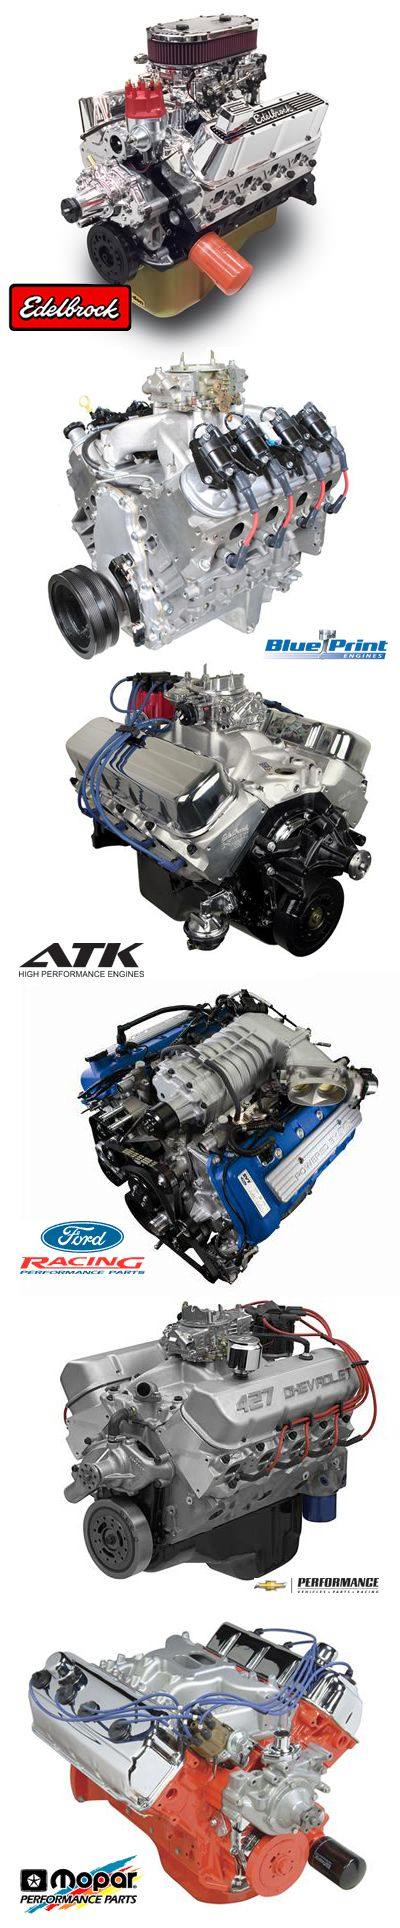 With crate engines from top brands like blueprint engines chevrolet with crate engines from top brands like blueprint engines chevrolet performance ford racing mopar performance edelbrock and more you are sure to find malvernweather